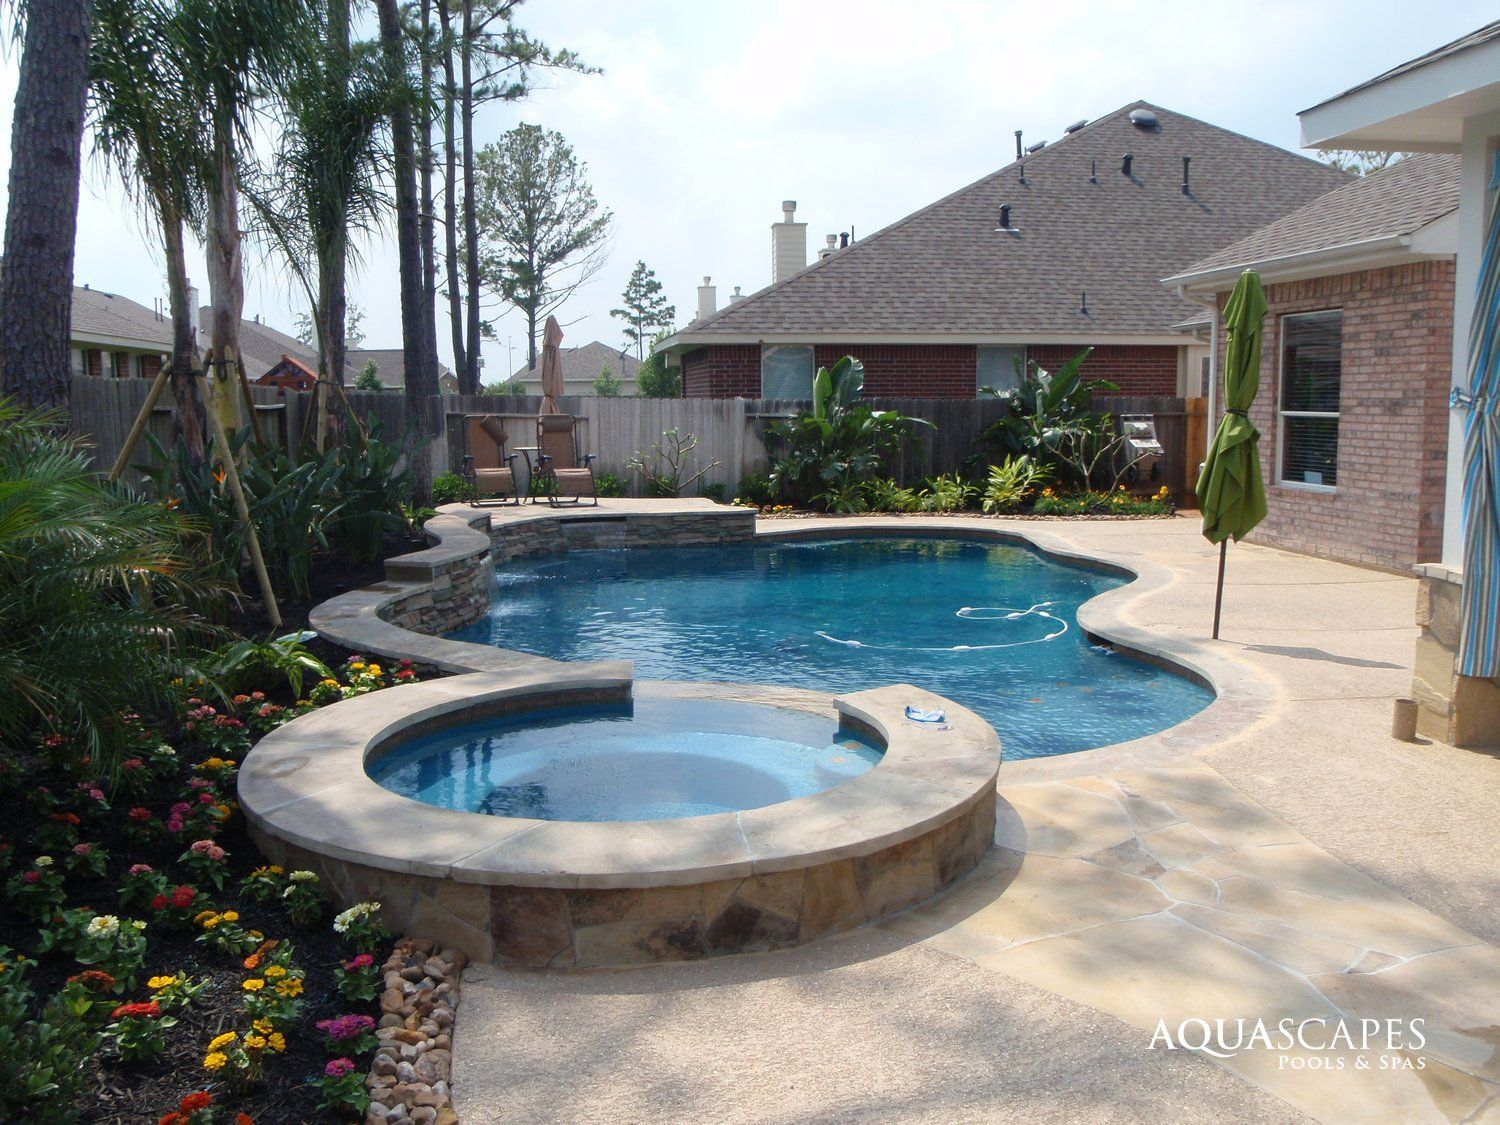 Freeform PoolFreeform Pool #066 By Aquascapes Pools And SpasSharePhoto By Aquascapes  Pools And Spasu003c